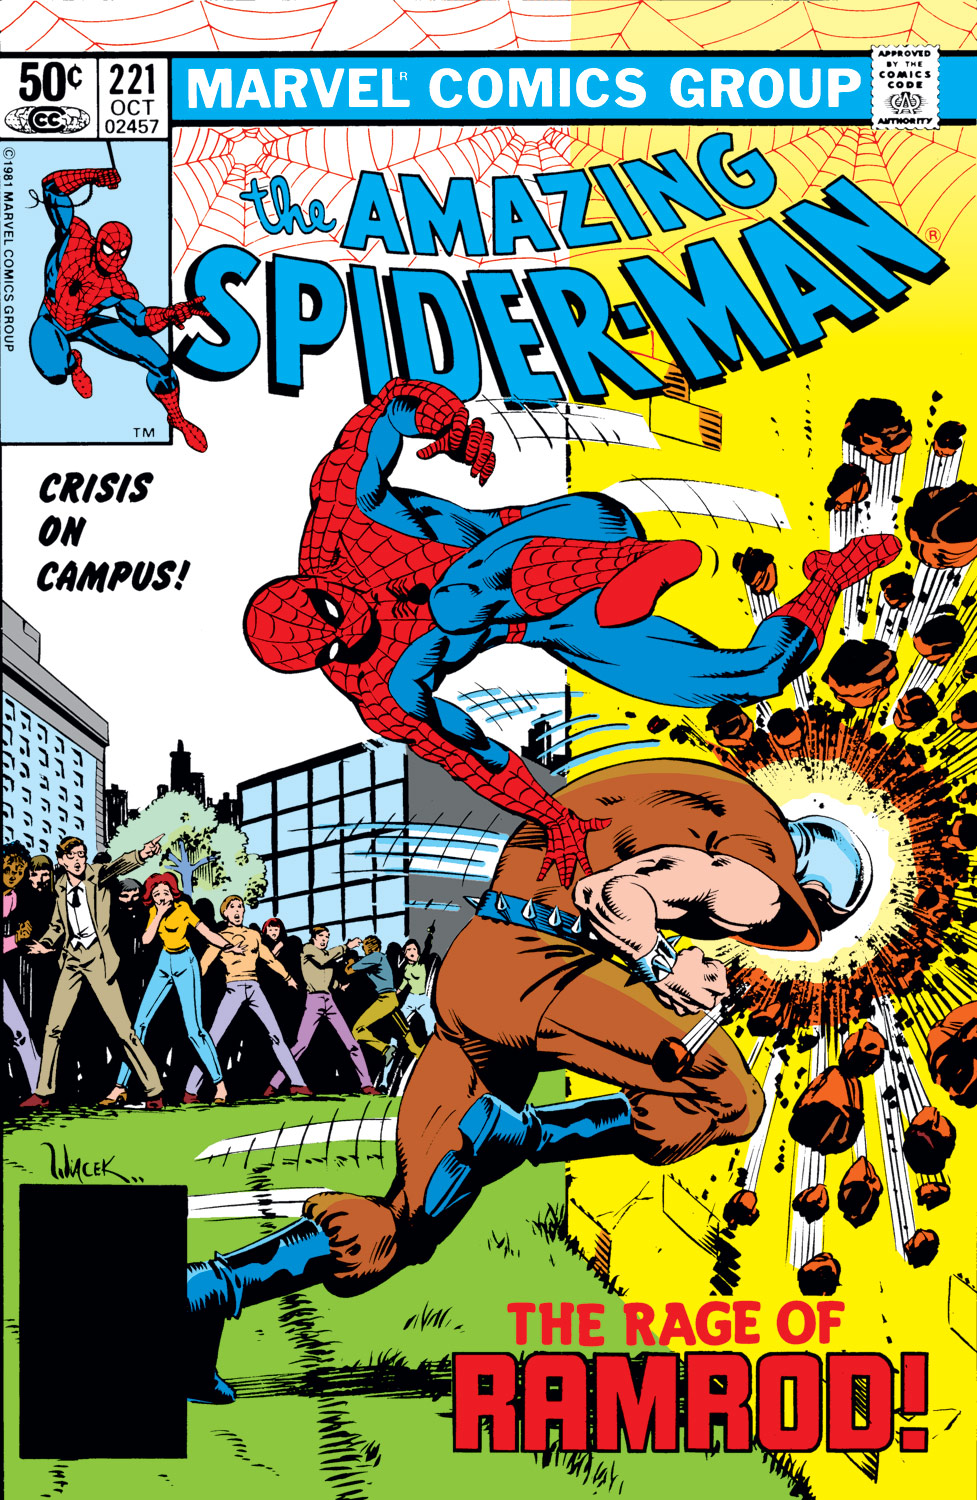 The Amazing Spider-Man (1963) #221